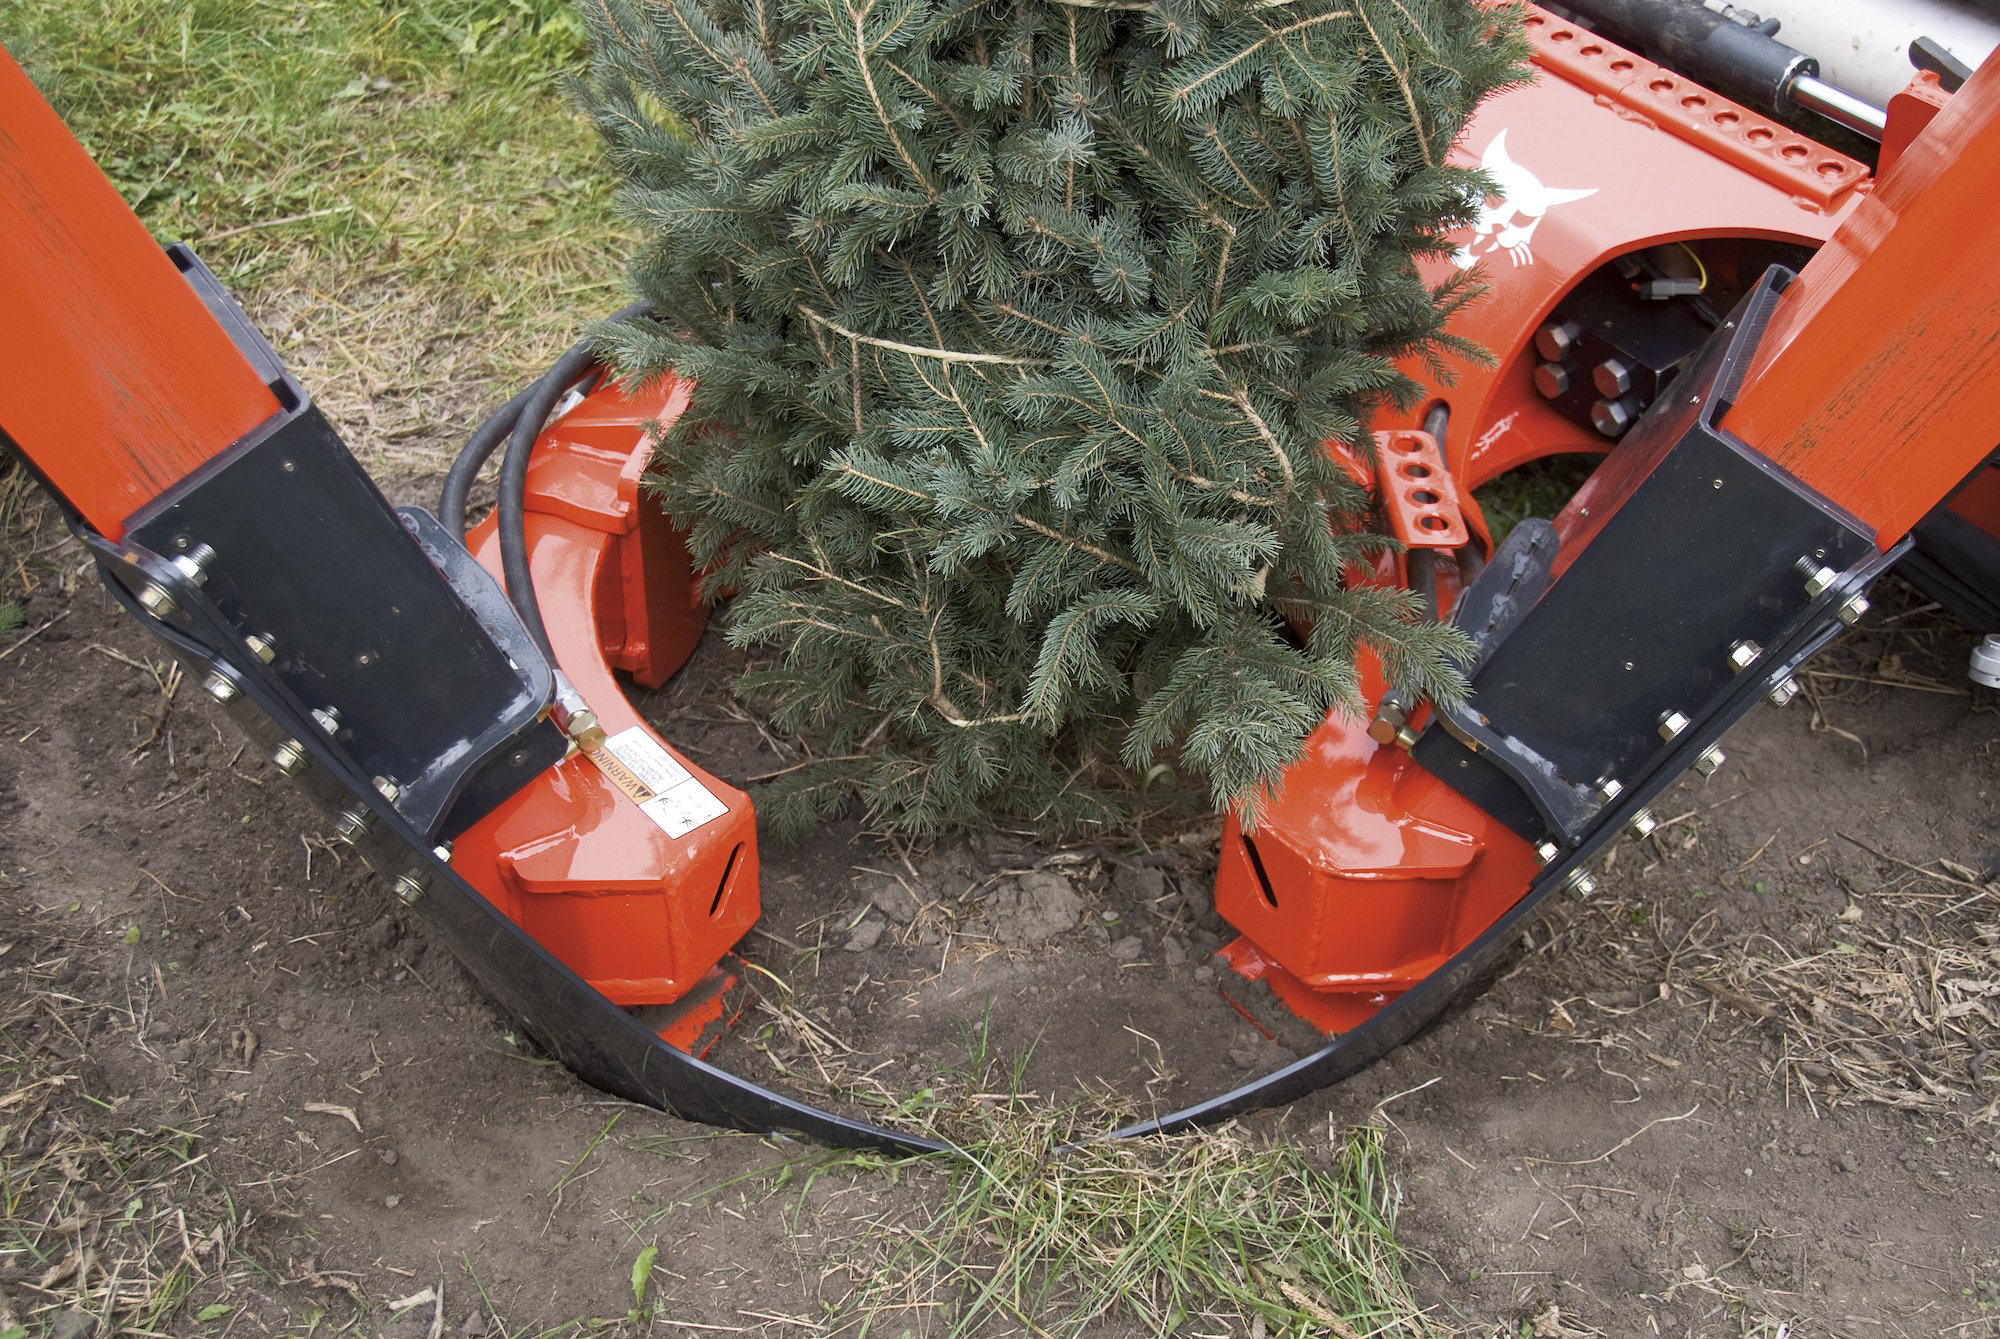 Landscaping Roundup: 18 attachments for raking, leveling, mowing